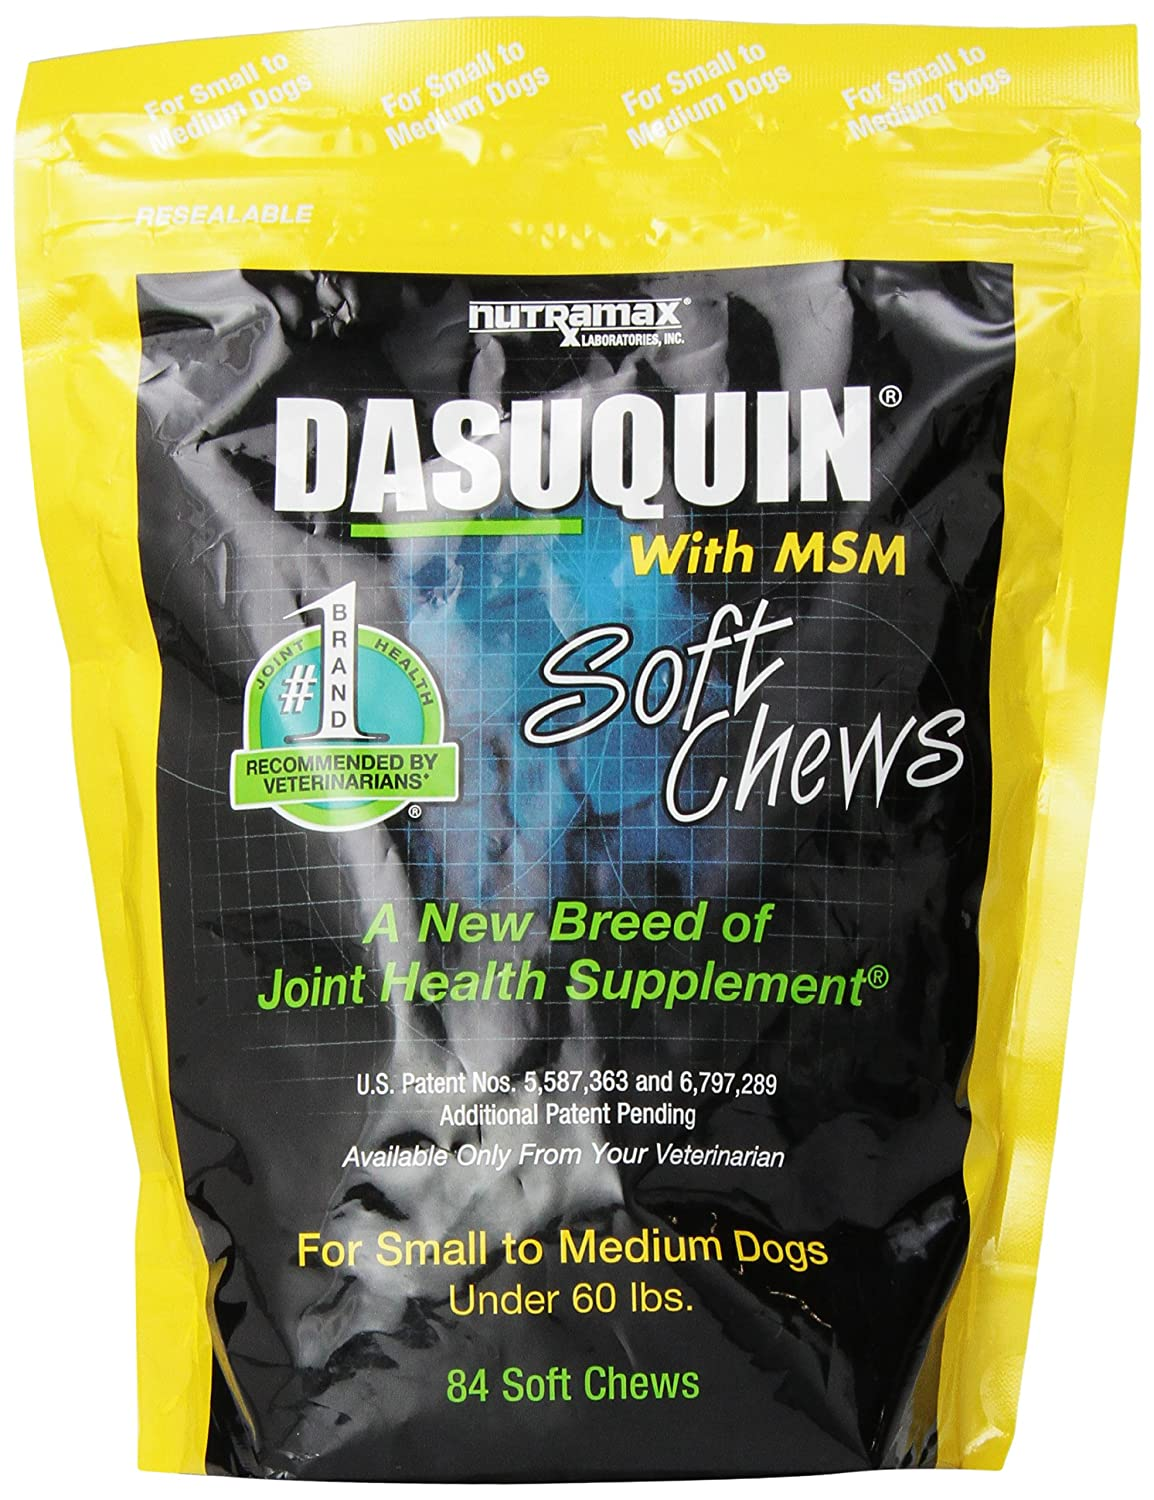 Nutramax Dasuquin With Msm Soft Chews Small Medium Dog Nutrimax Healthy Joint 60 Tablet 84 Count Pet Bone And Supplements Supplies